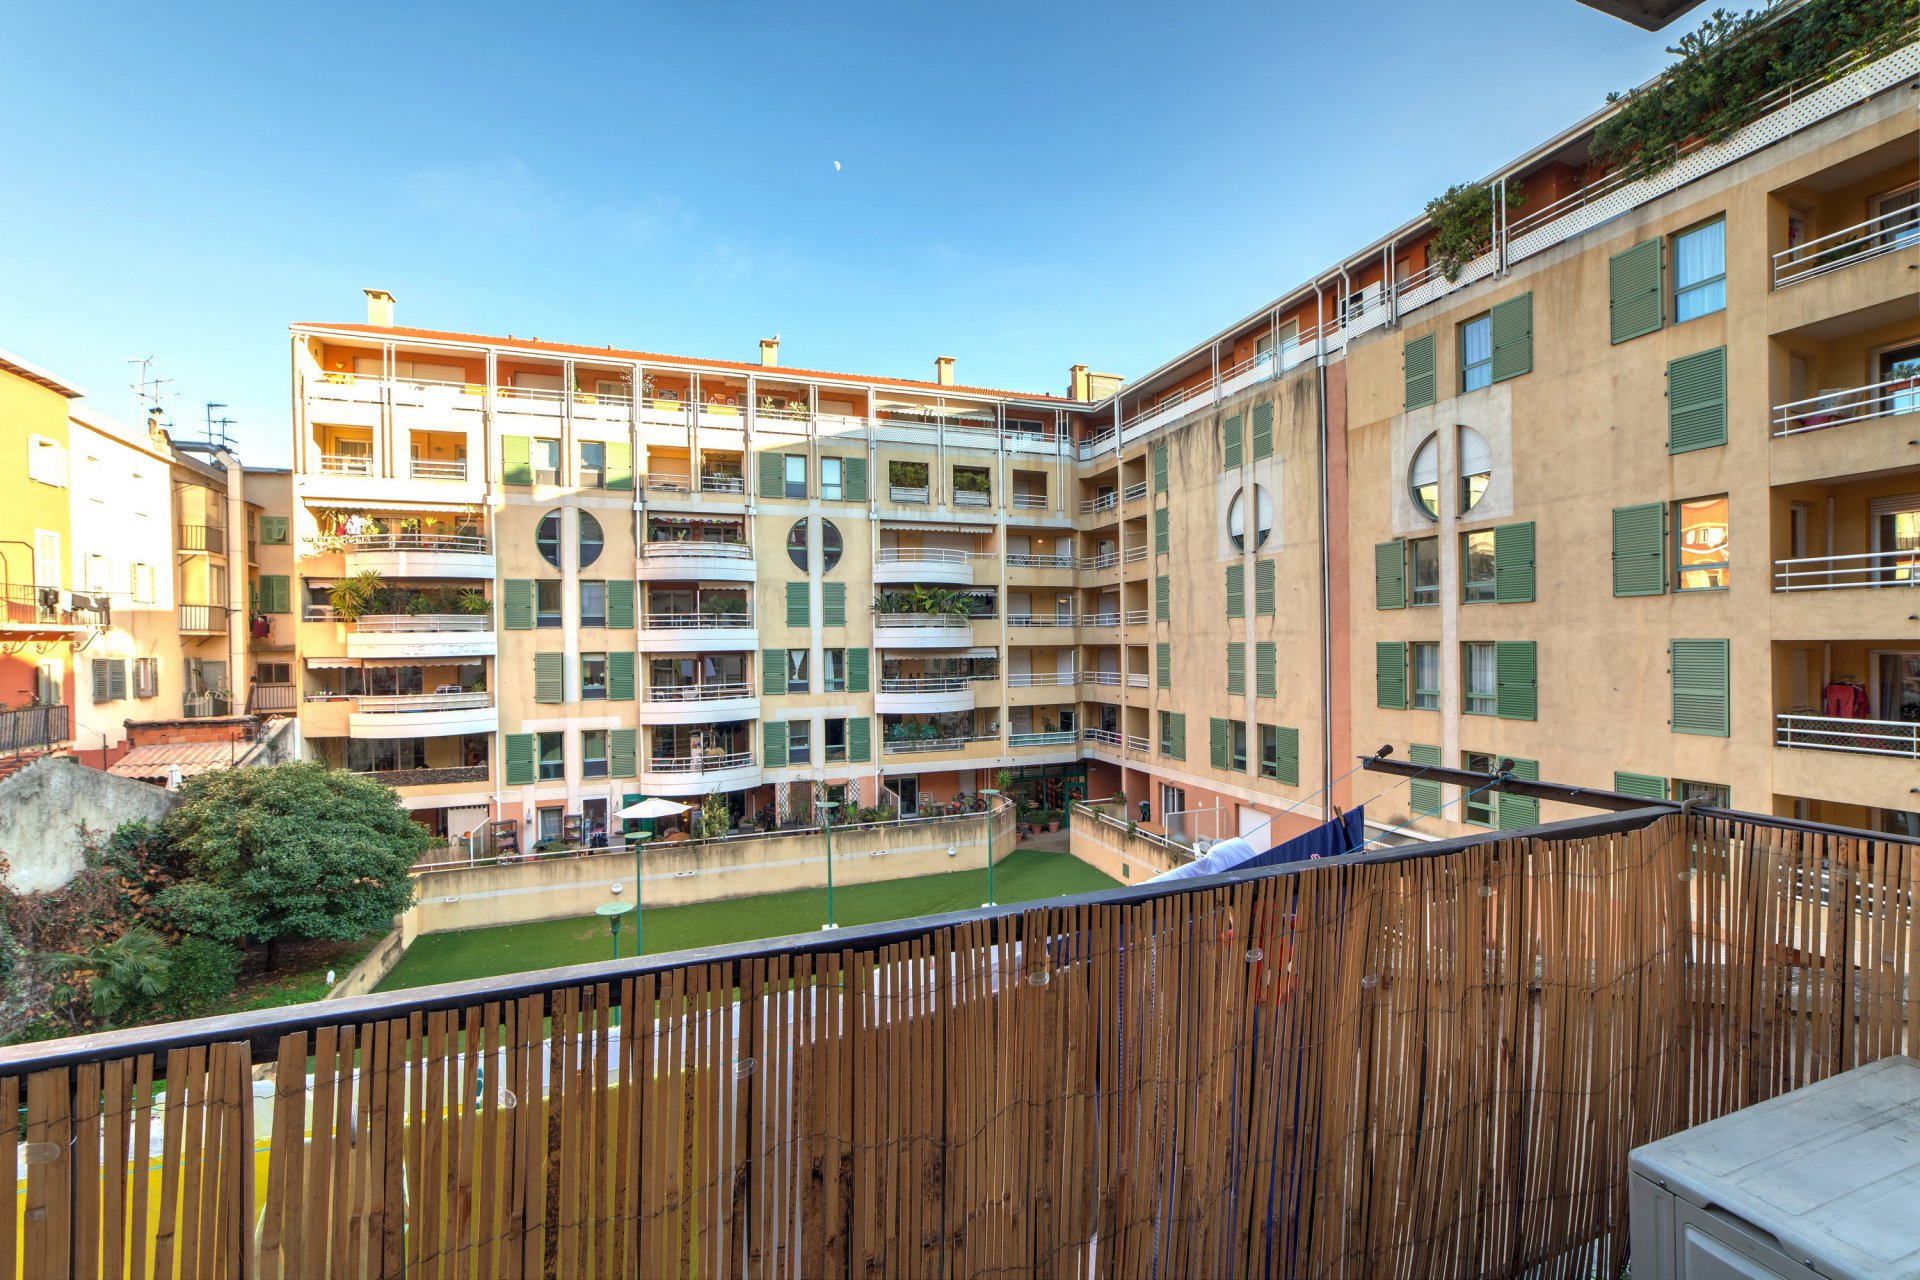 2 BEDROOM APARTMENT GARIBALDI